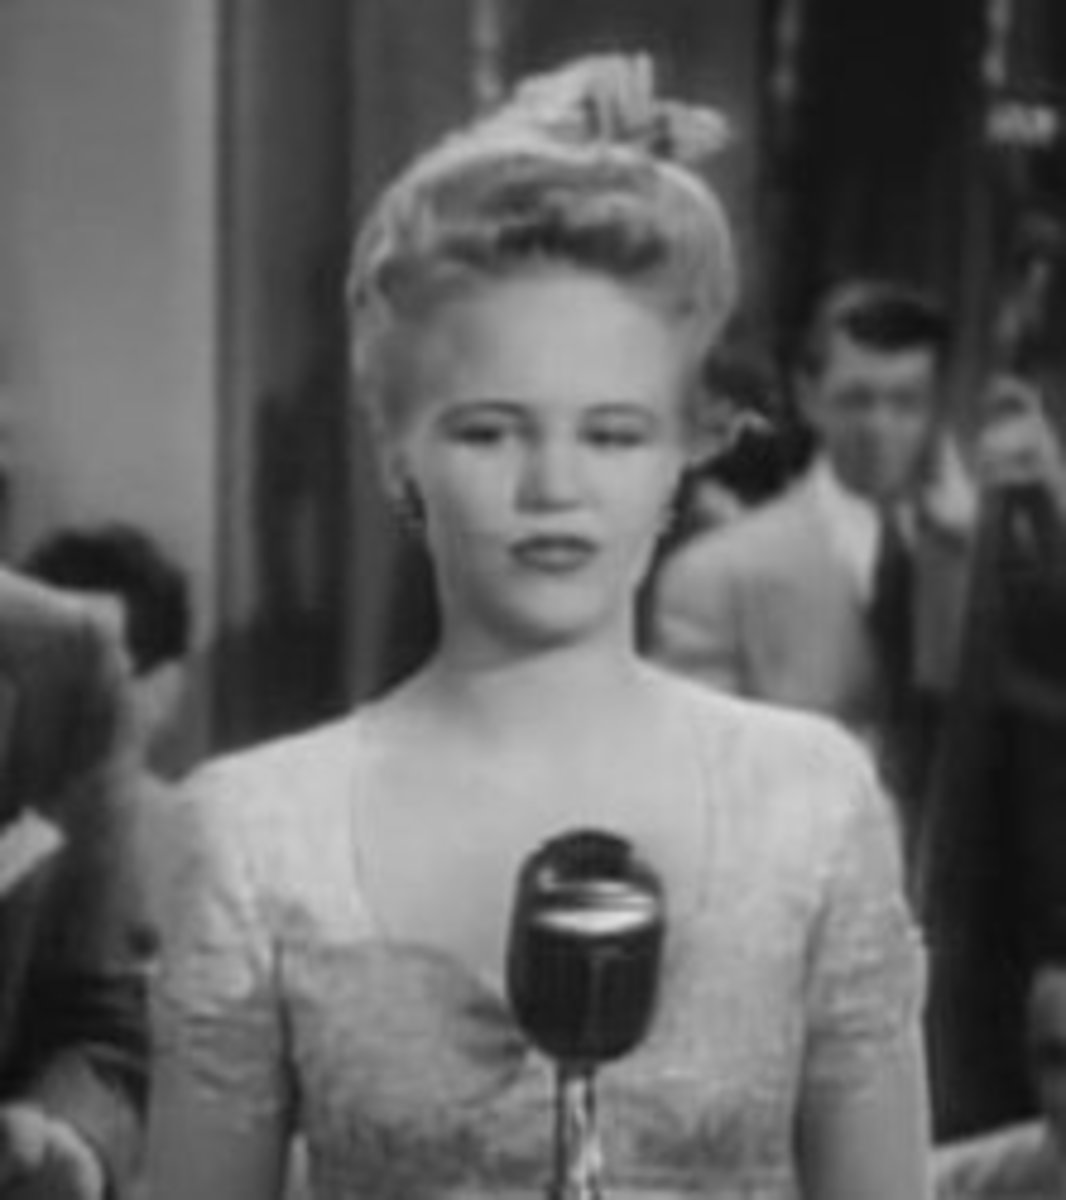 Peggy Lee's long face is emphasized here, but made more attractive by broadening the top of her head and drawing the eye to her broad forehead.